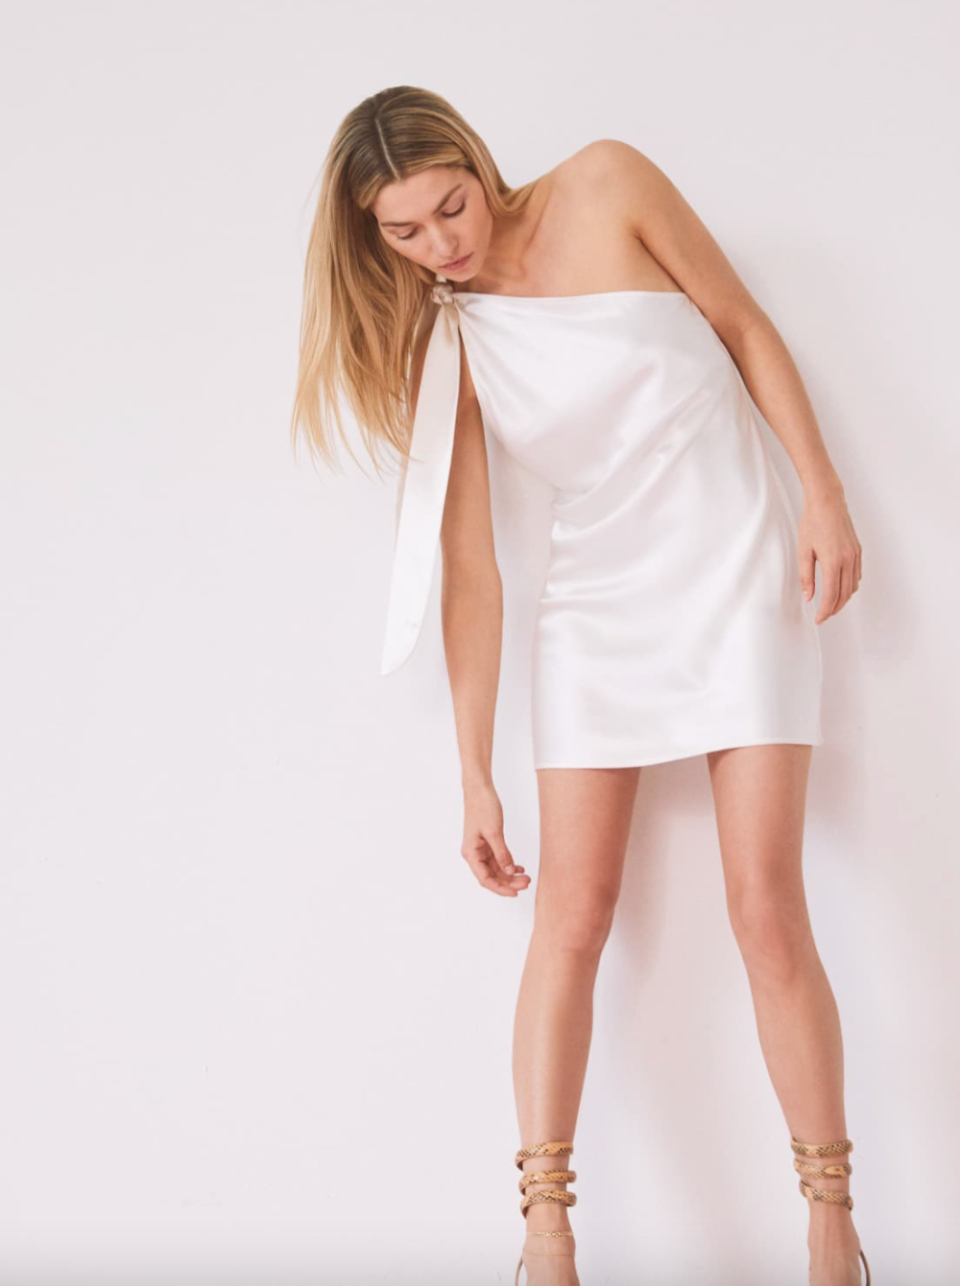 Reformation 'Acacia' Dress (Photo via Reformation)